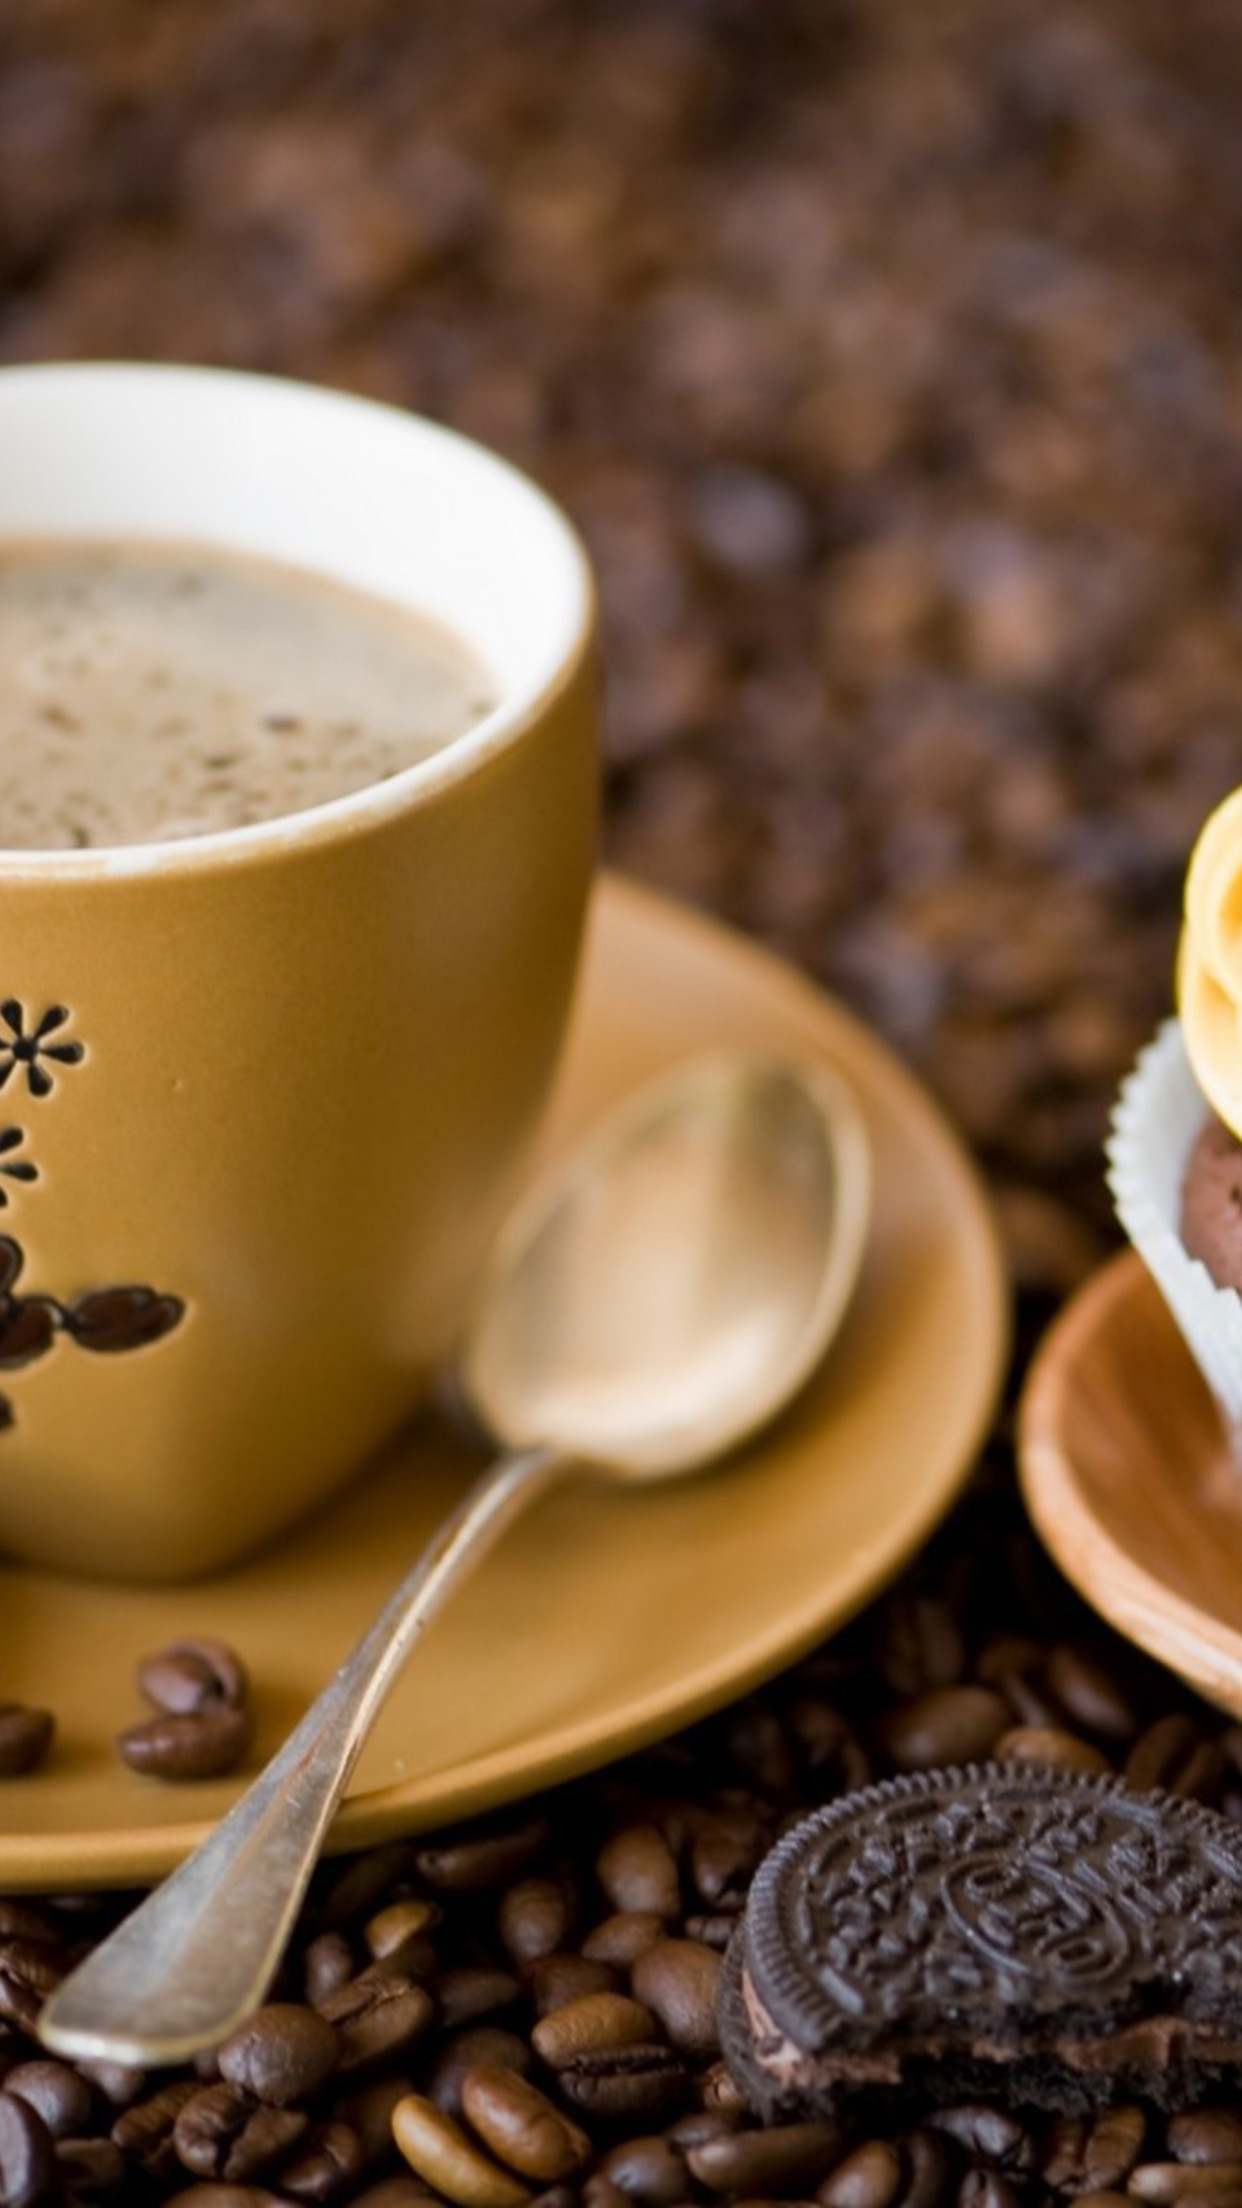 food coffee oreo 3Wallpapers iPhone Parallax Les 3Wallpapers iPhone du jour (13/02/2016)